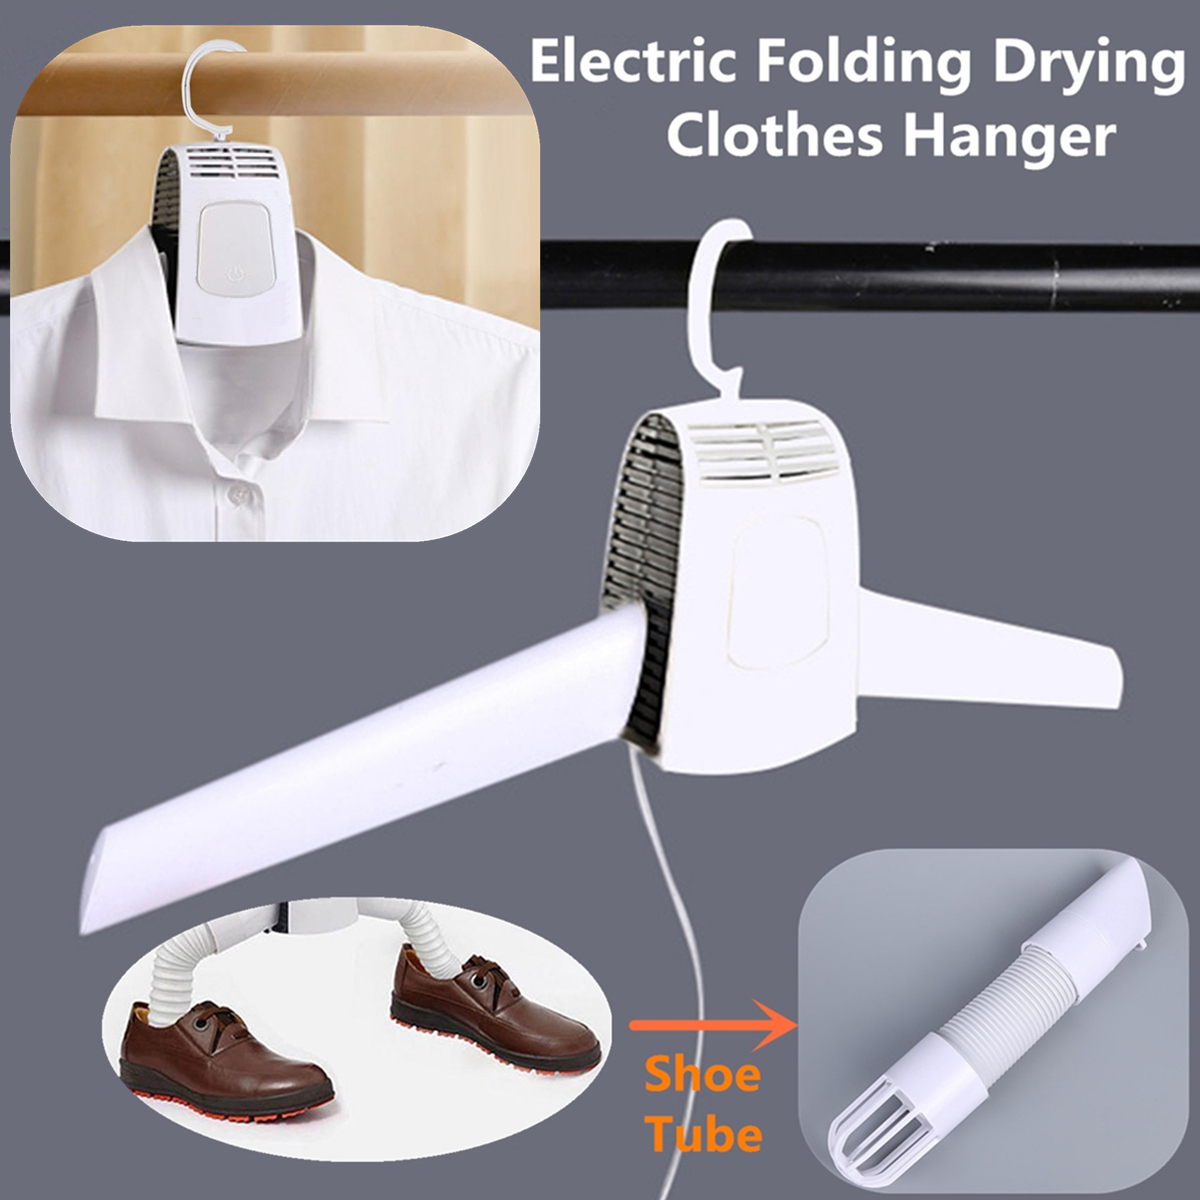 Portable Electric Folding Cloth Hanger Shoes Dryer Travel Laundry Drying Rack